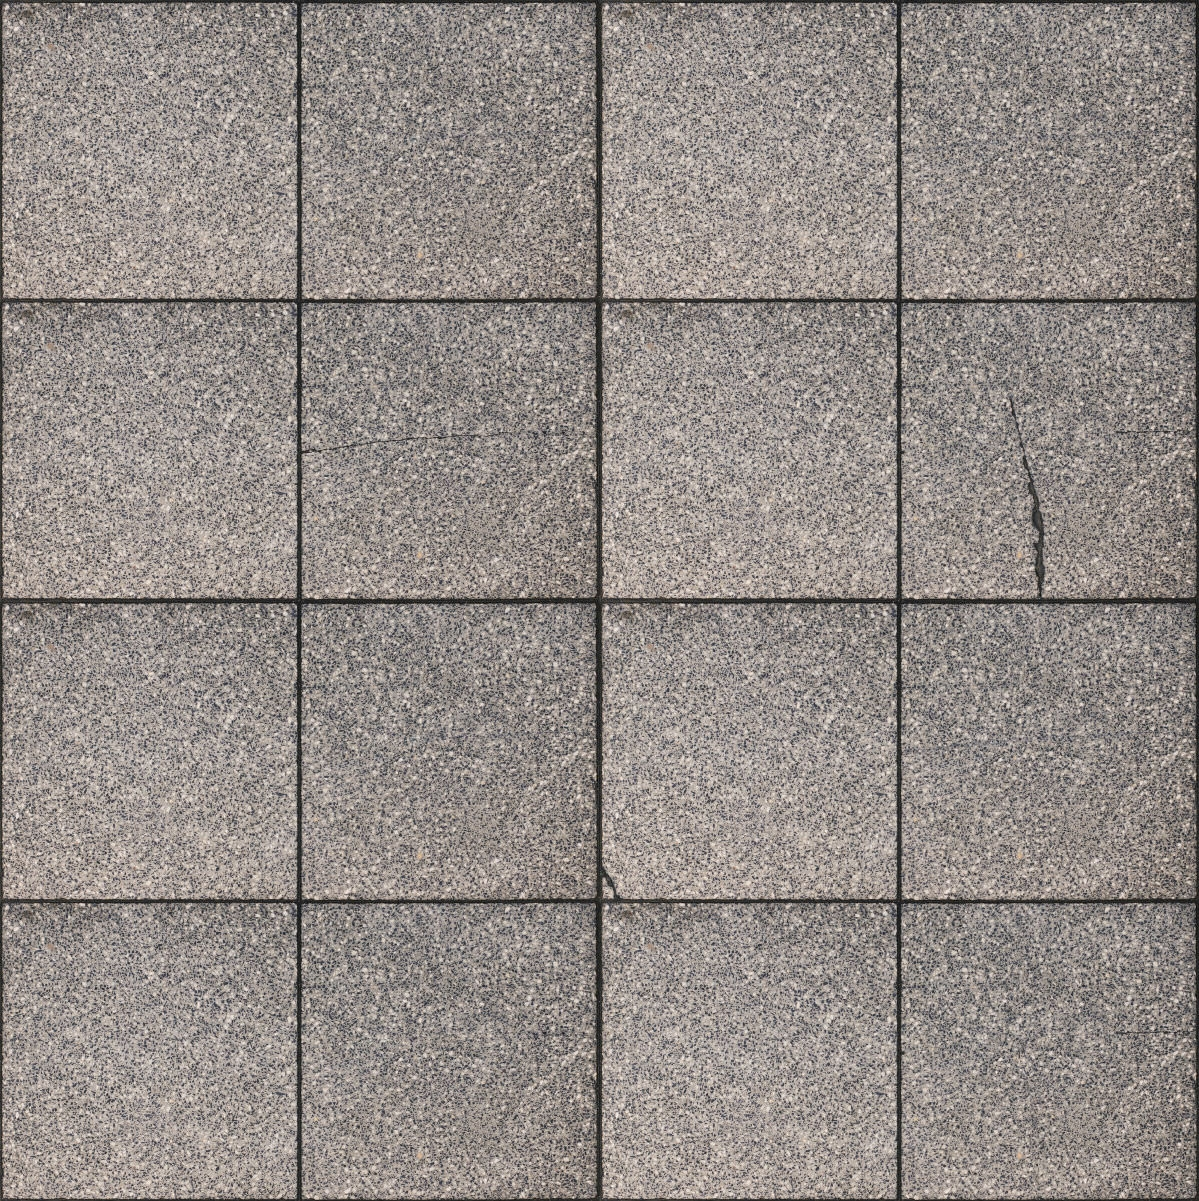 Stone Tile Flooring : Free high quality tile textures to decorate your home